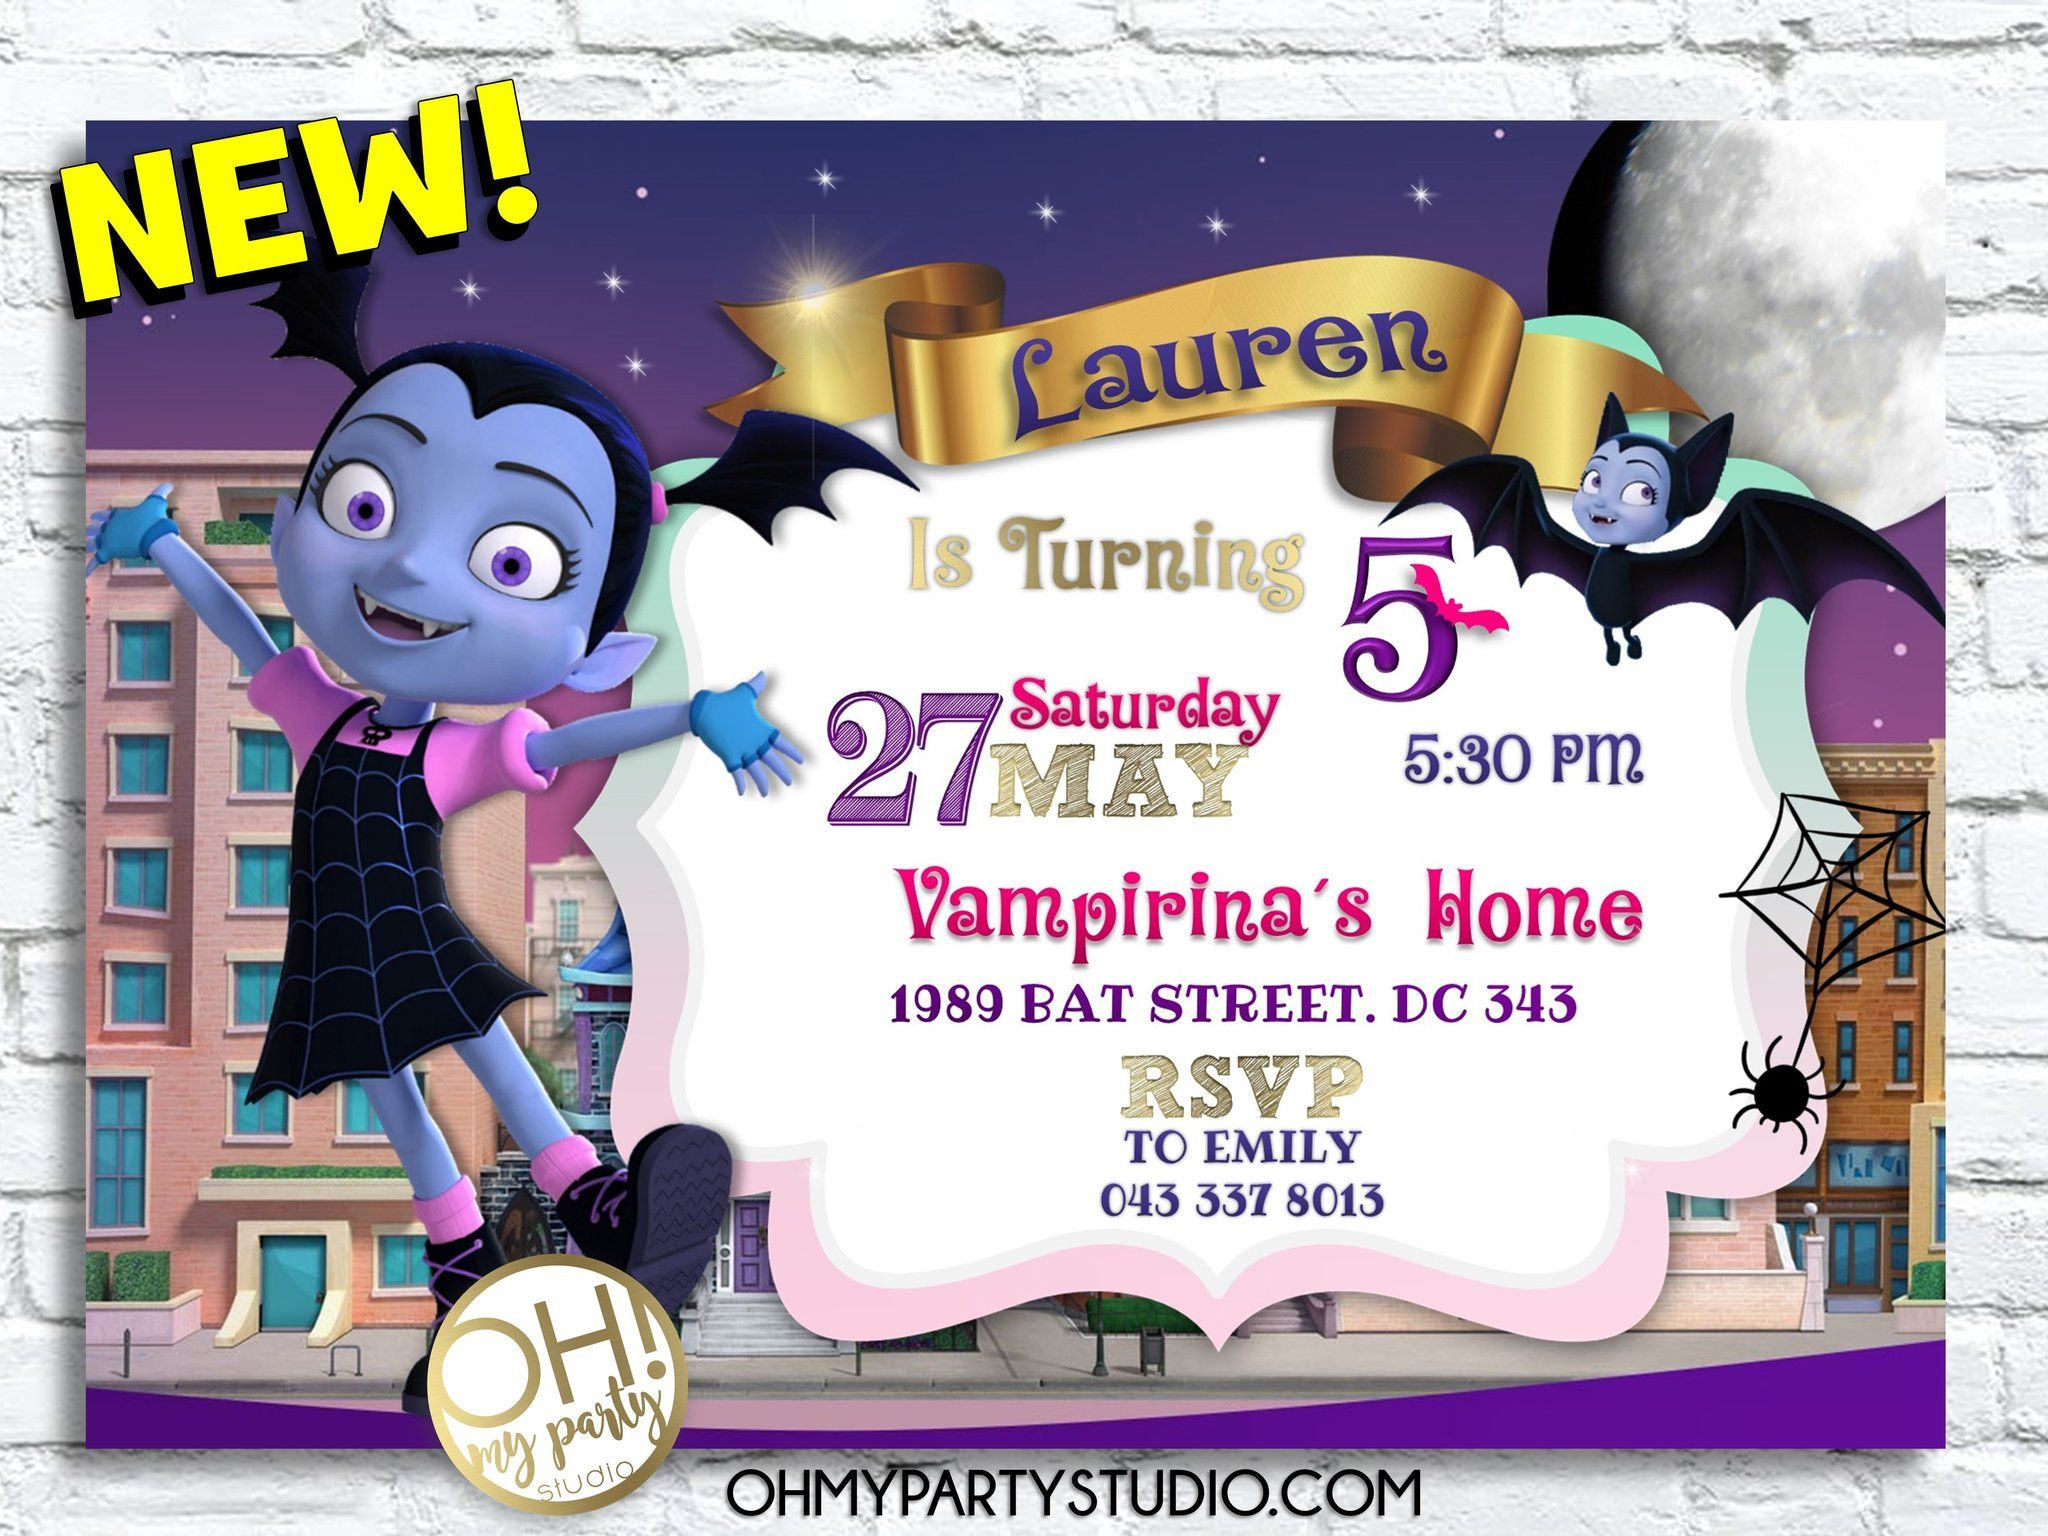 Vampirina Halloween Party 2020 Ny VAMPIRINA BIRTHDAY INVITATION in 2020 | Birthday invitations